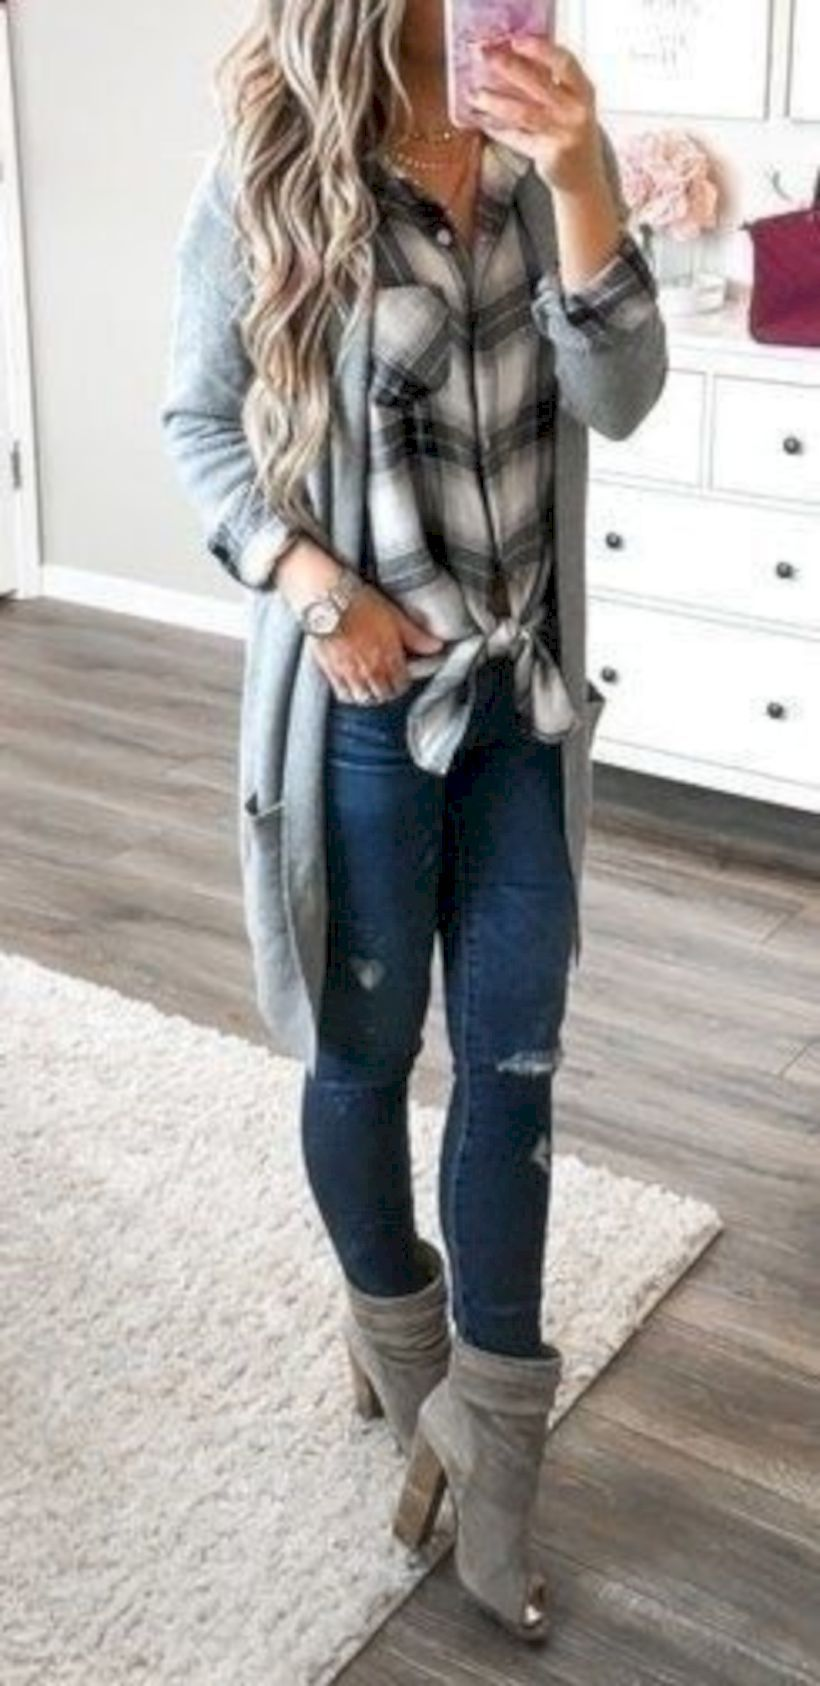 49 Trending Fall Outfit Ideas to Get Inspire Let's embrace the fall season with these fall outfit ideas to copy. Some say that tall boots are made for [\u2026] #falloutfitsforwork